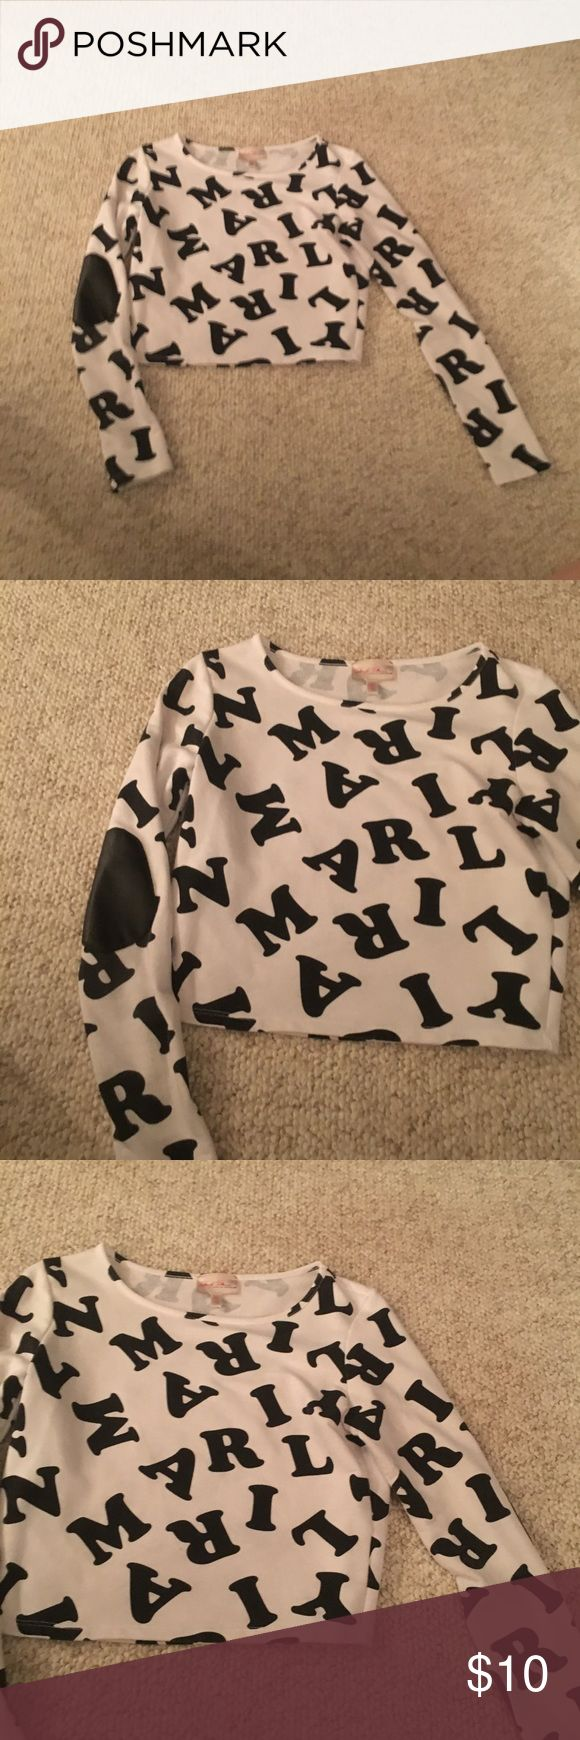 Size small Marilyn Monroe Shirt Size small Marilyn Monroe Shirt in nice condition Marilyn Monroe Tops